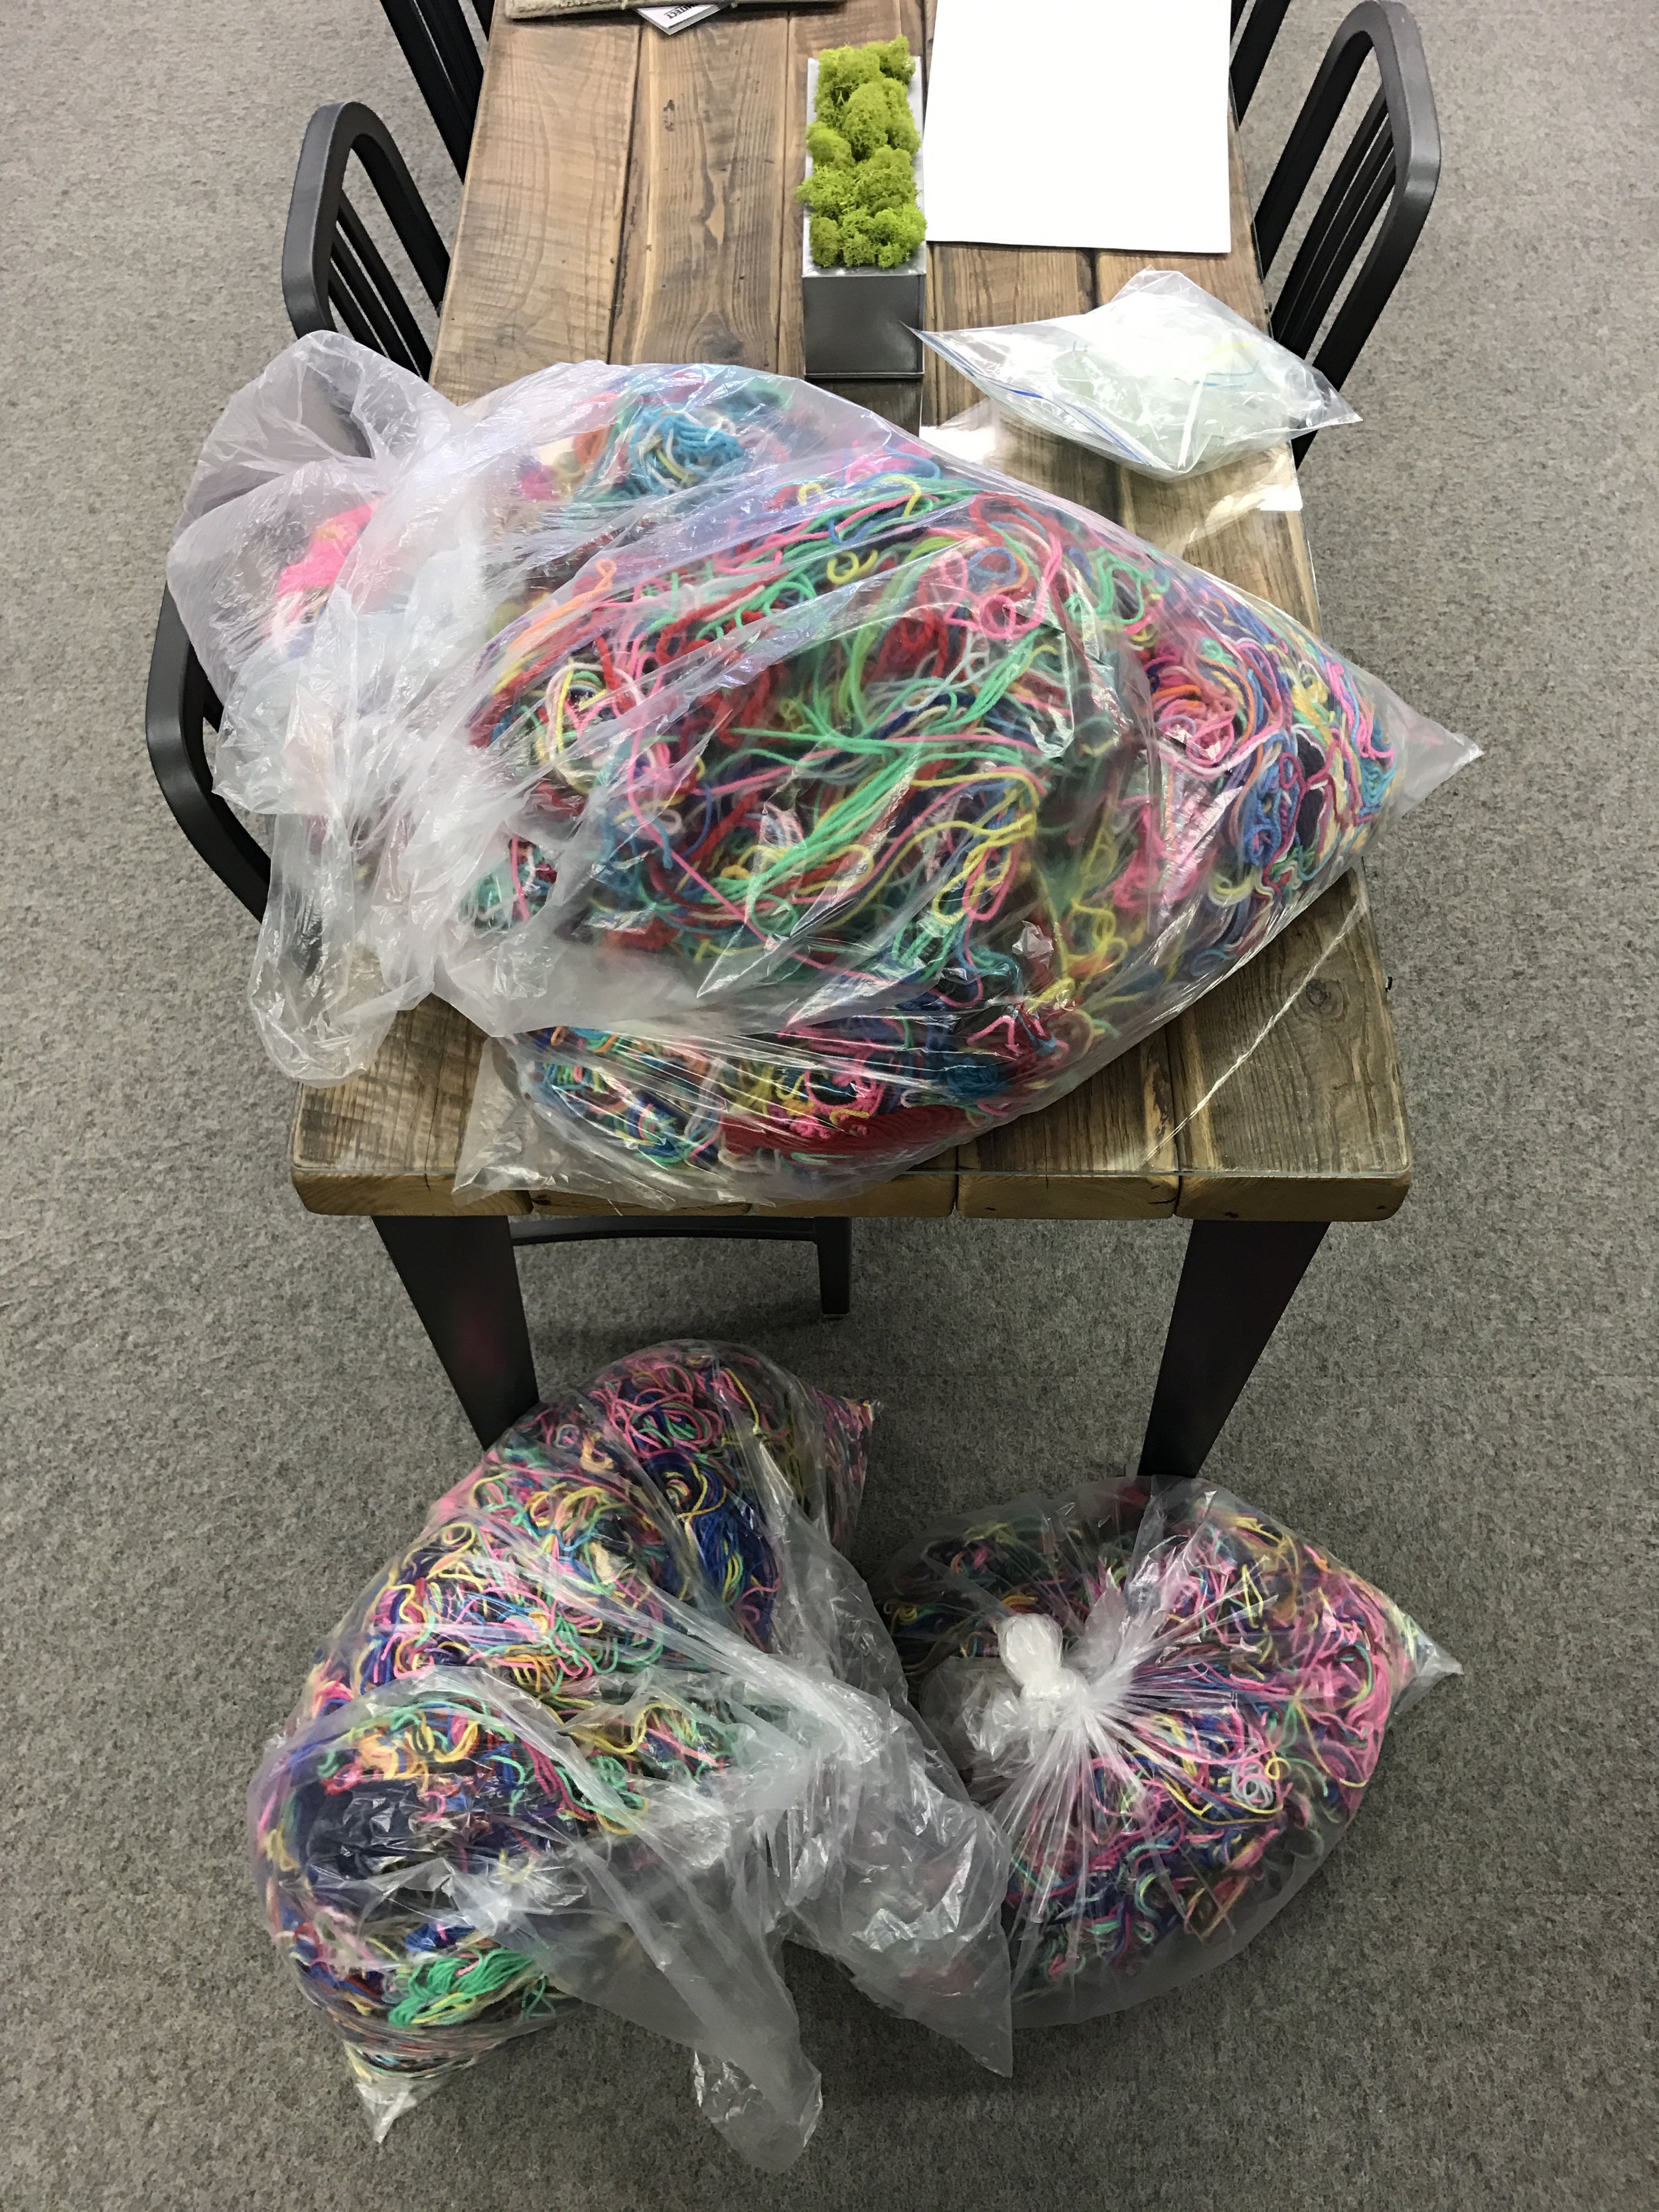 It took 3 garbage bags to collect all the yarn from this year's Shanty.